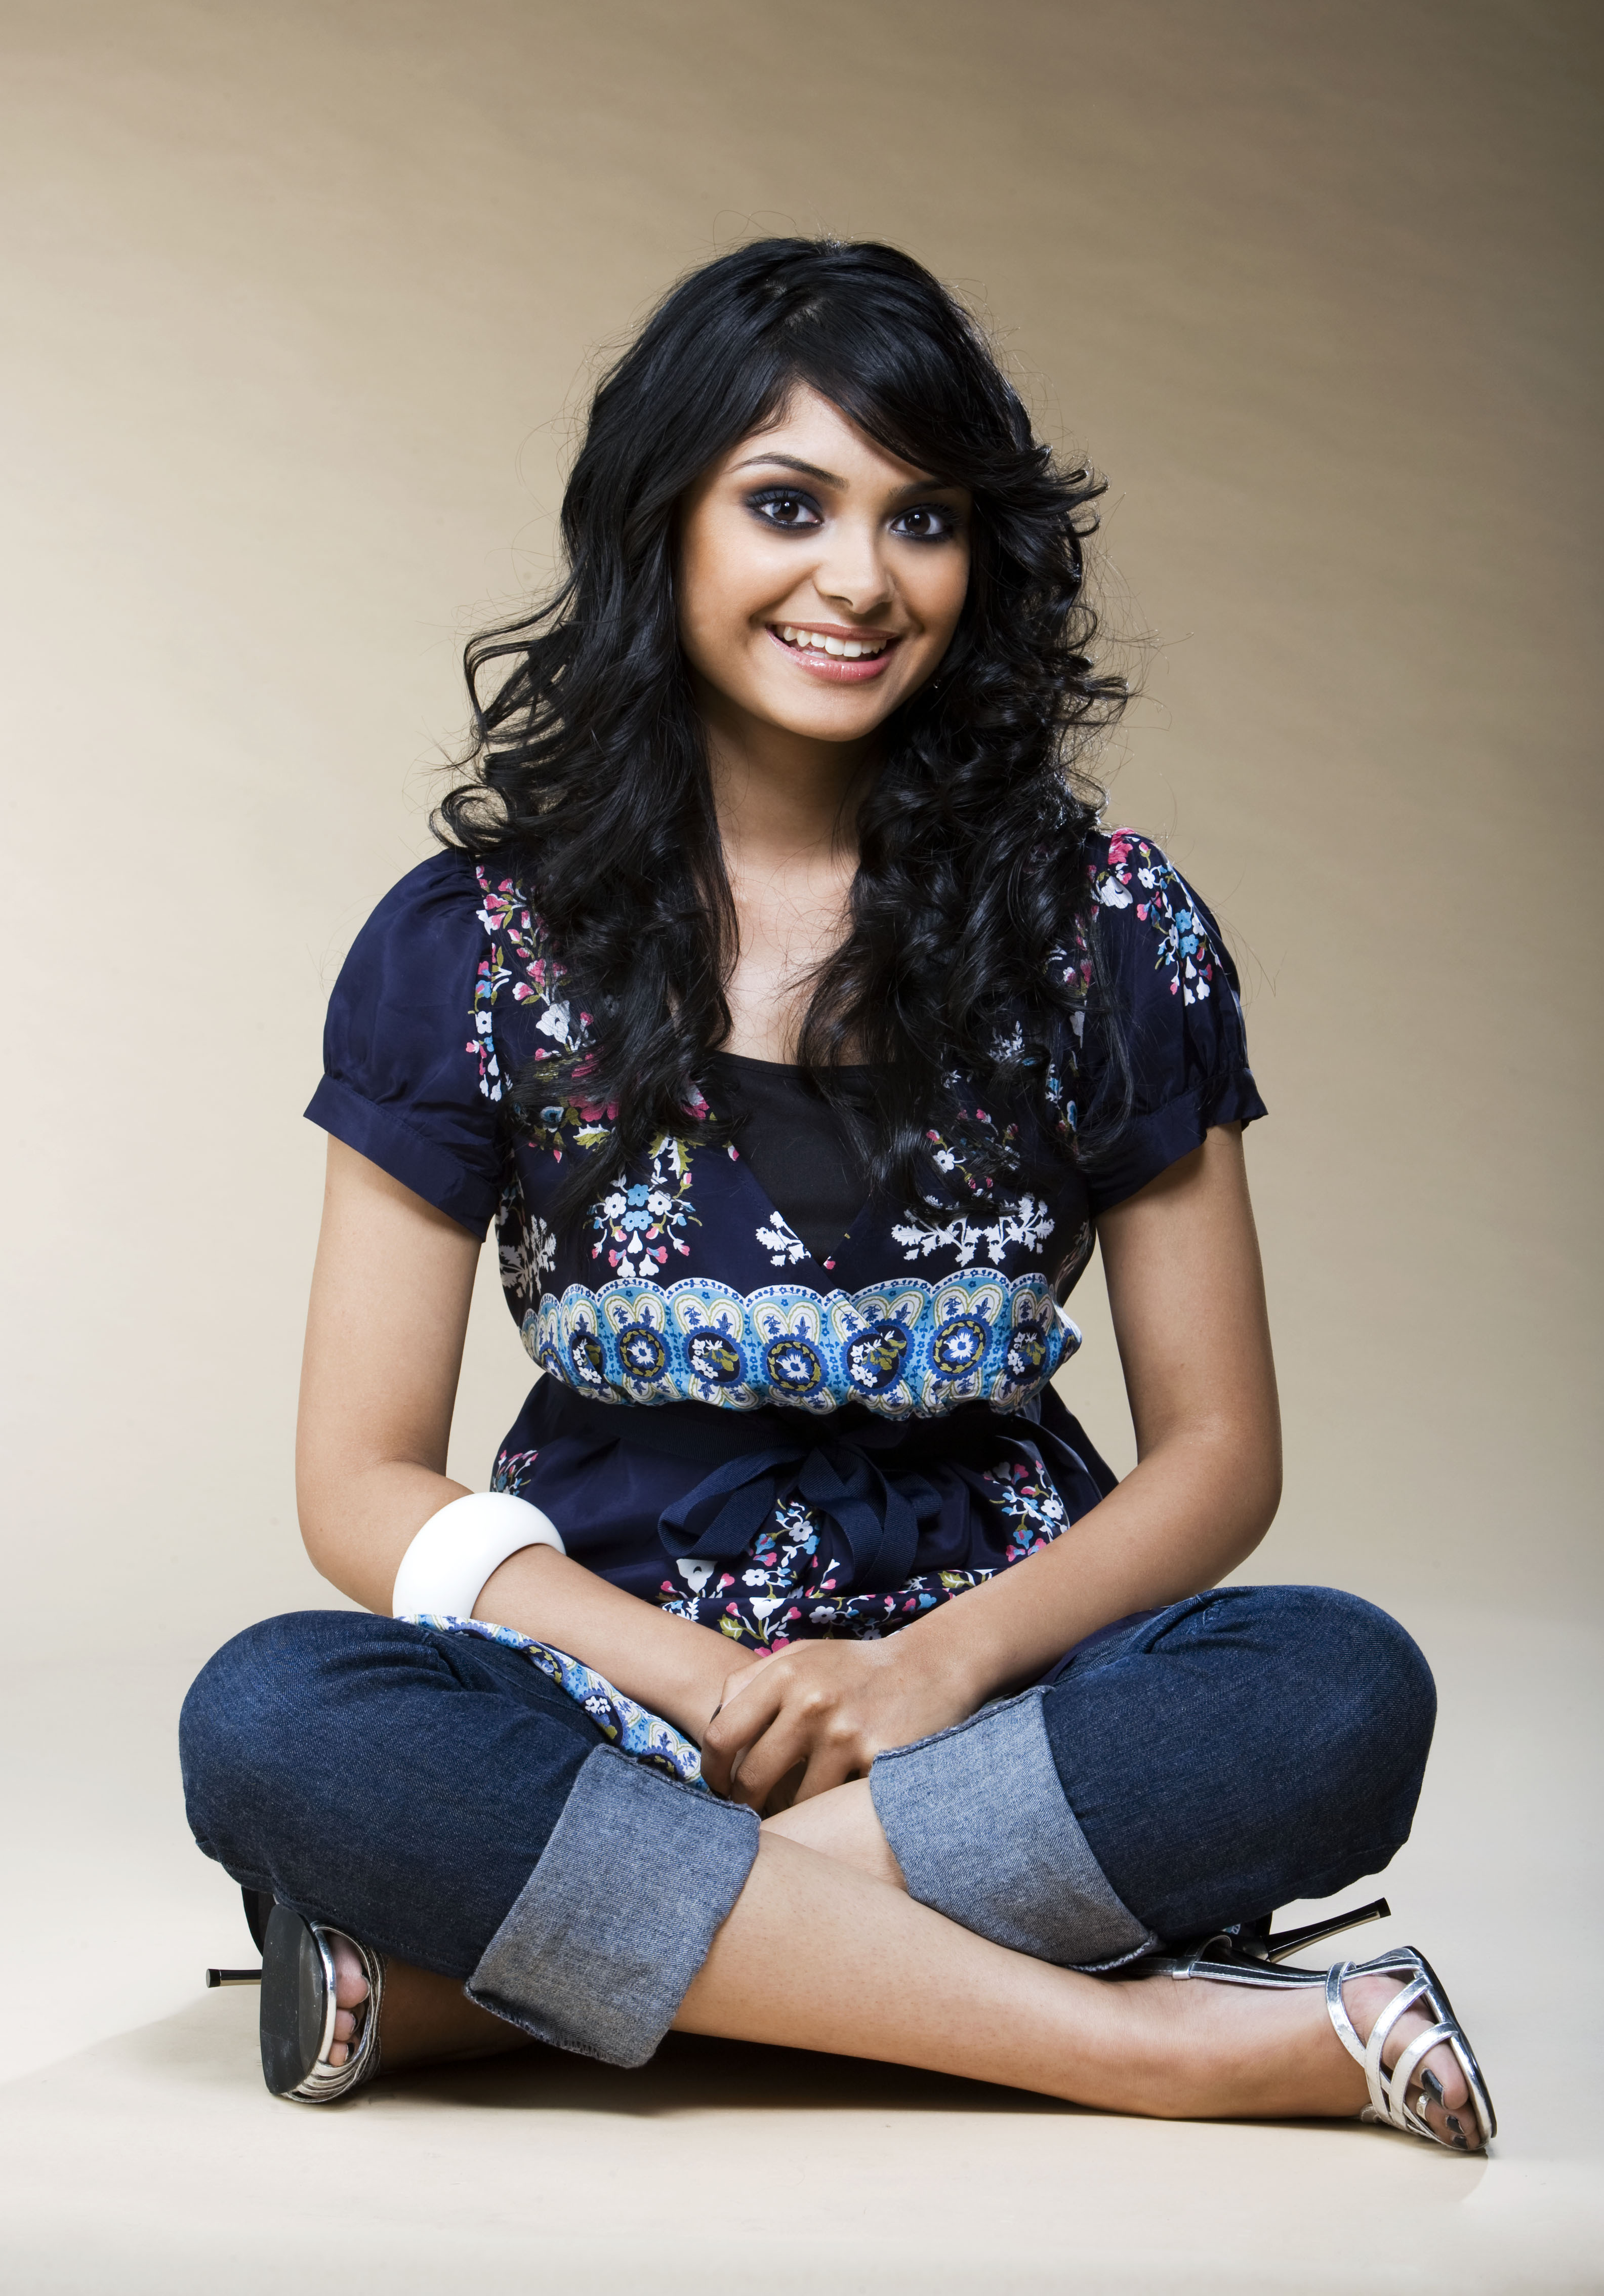 Afshan azad bangladeshi film actors hd wallpapers and photos afshan azad s feet wikifeet altavistaventures Gallery